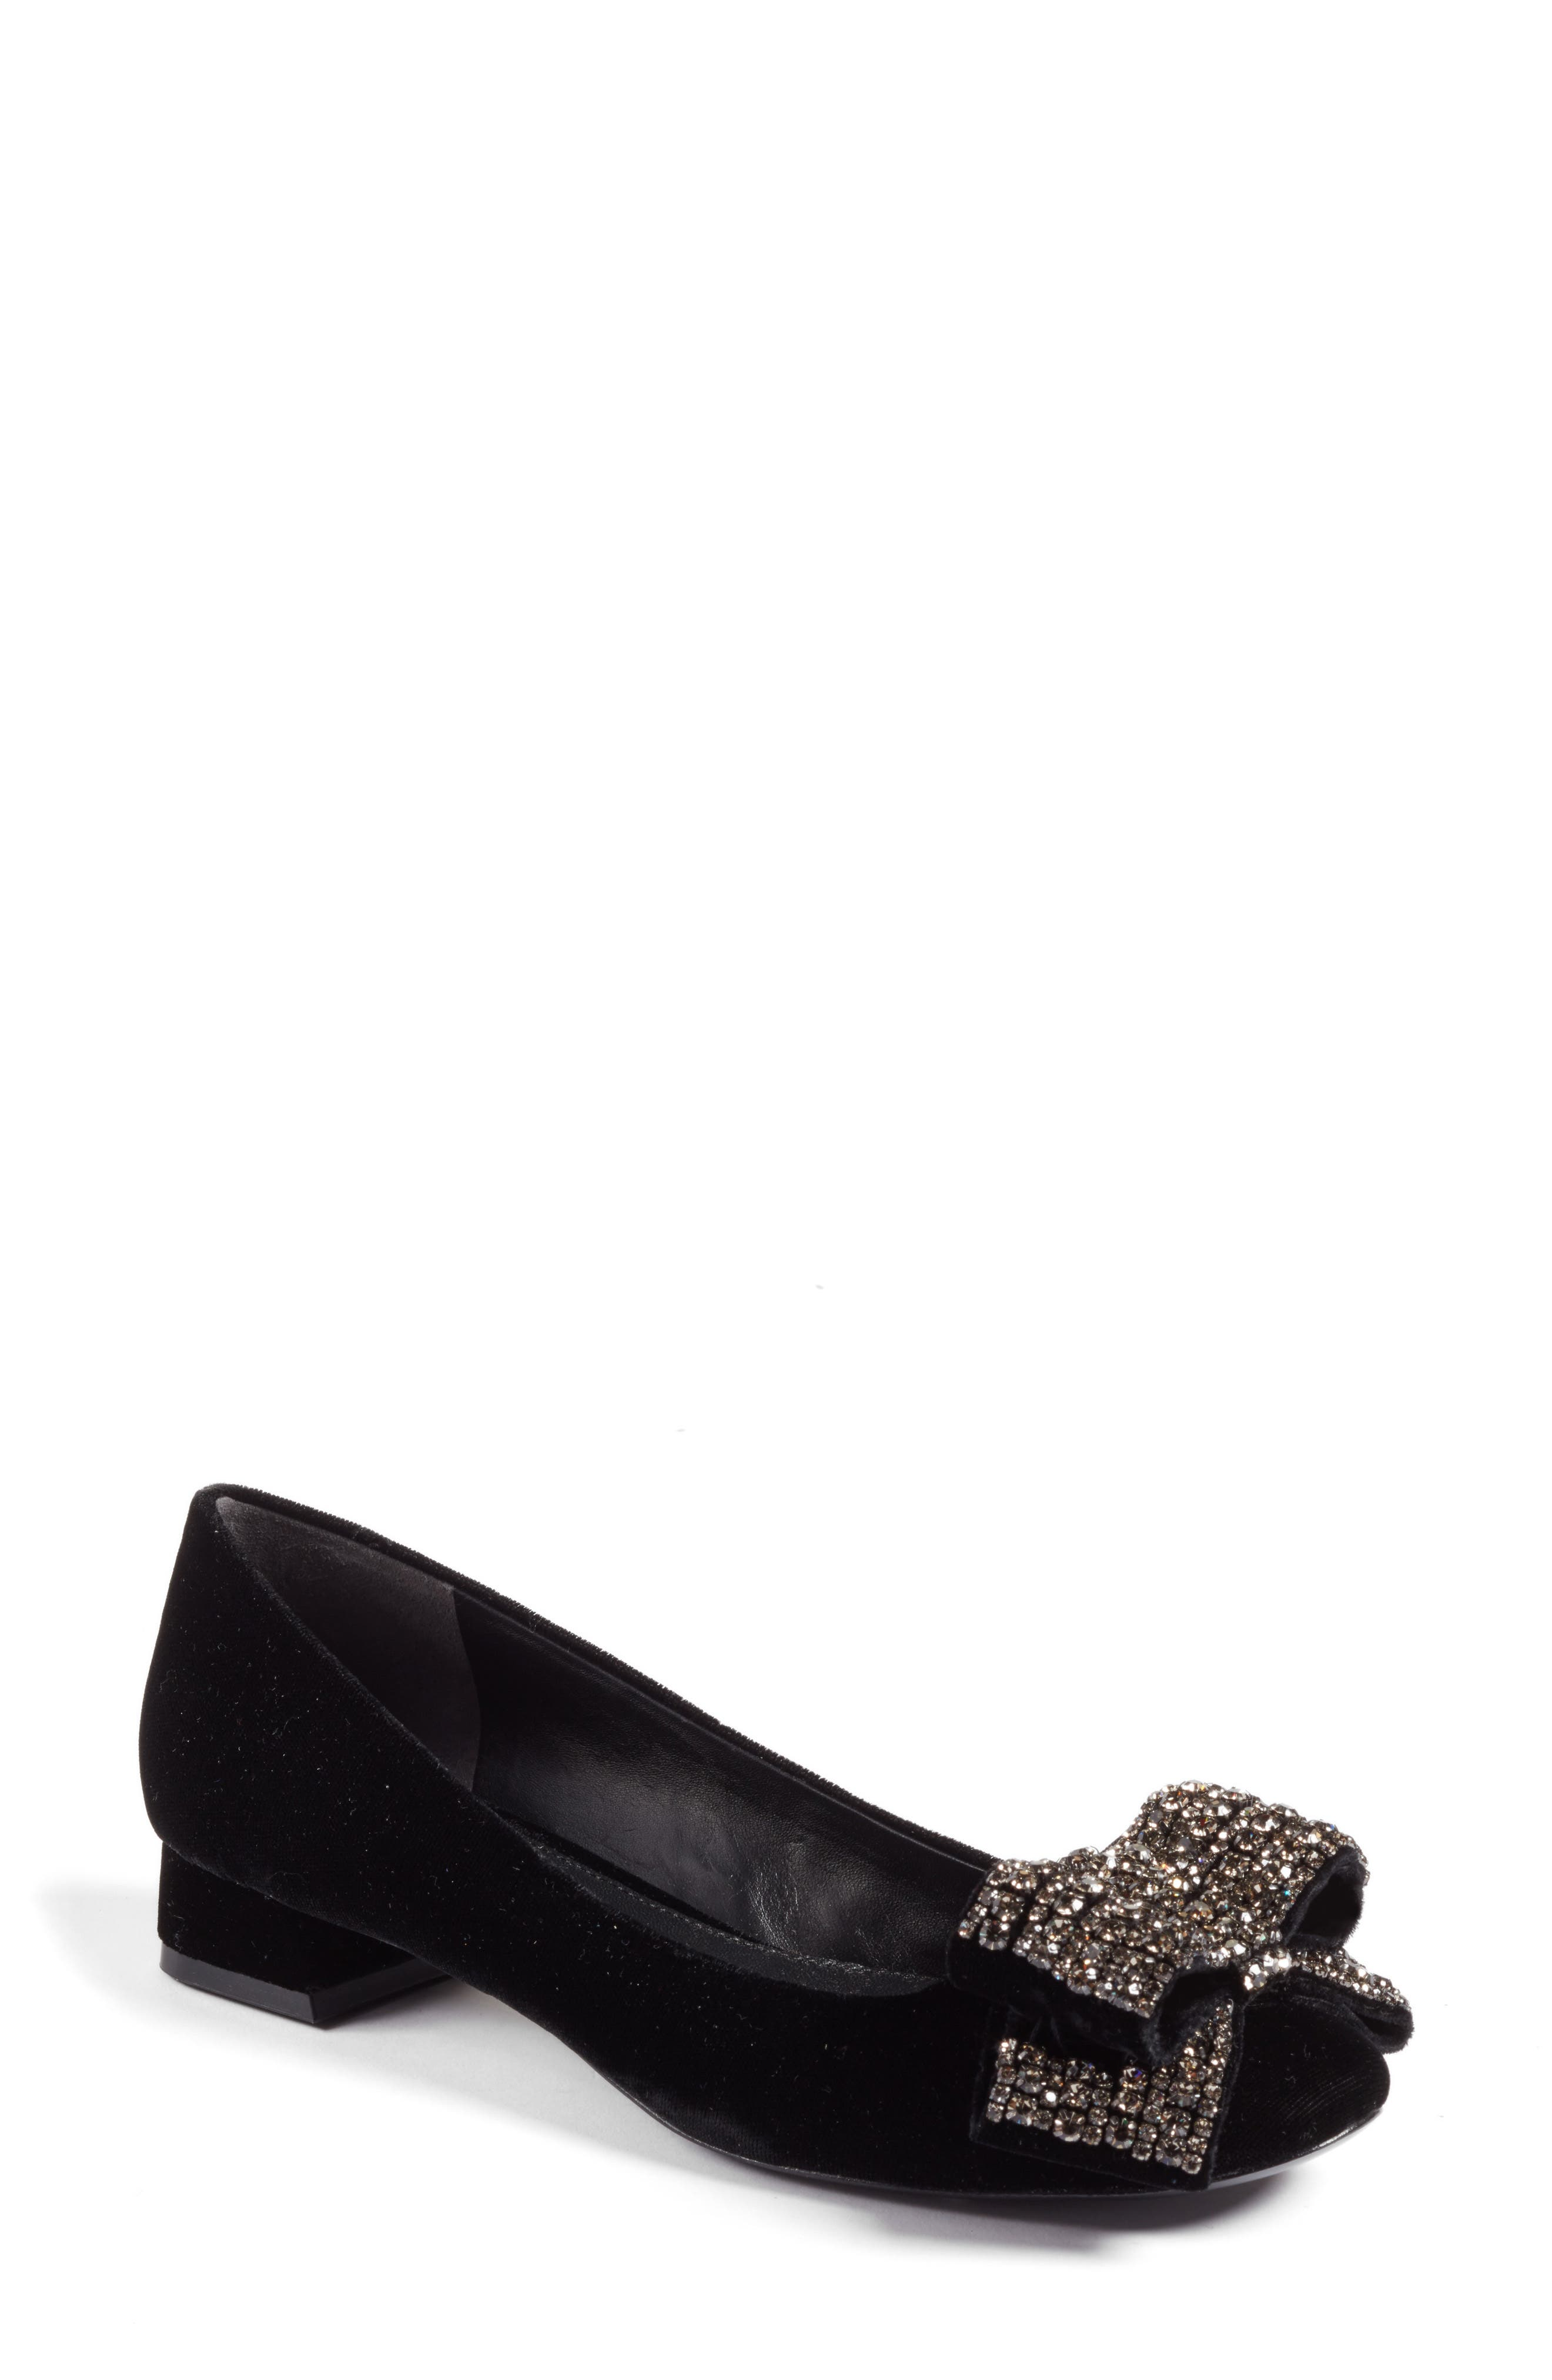 Josephine Embellished Bow Pump,                         Main,                         color, 009